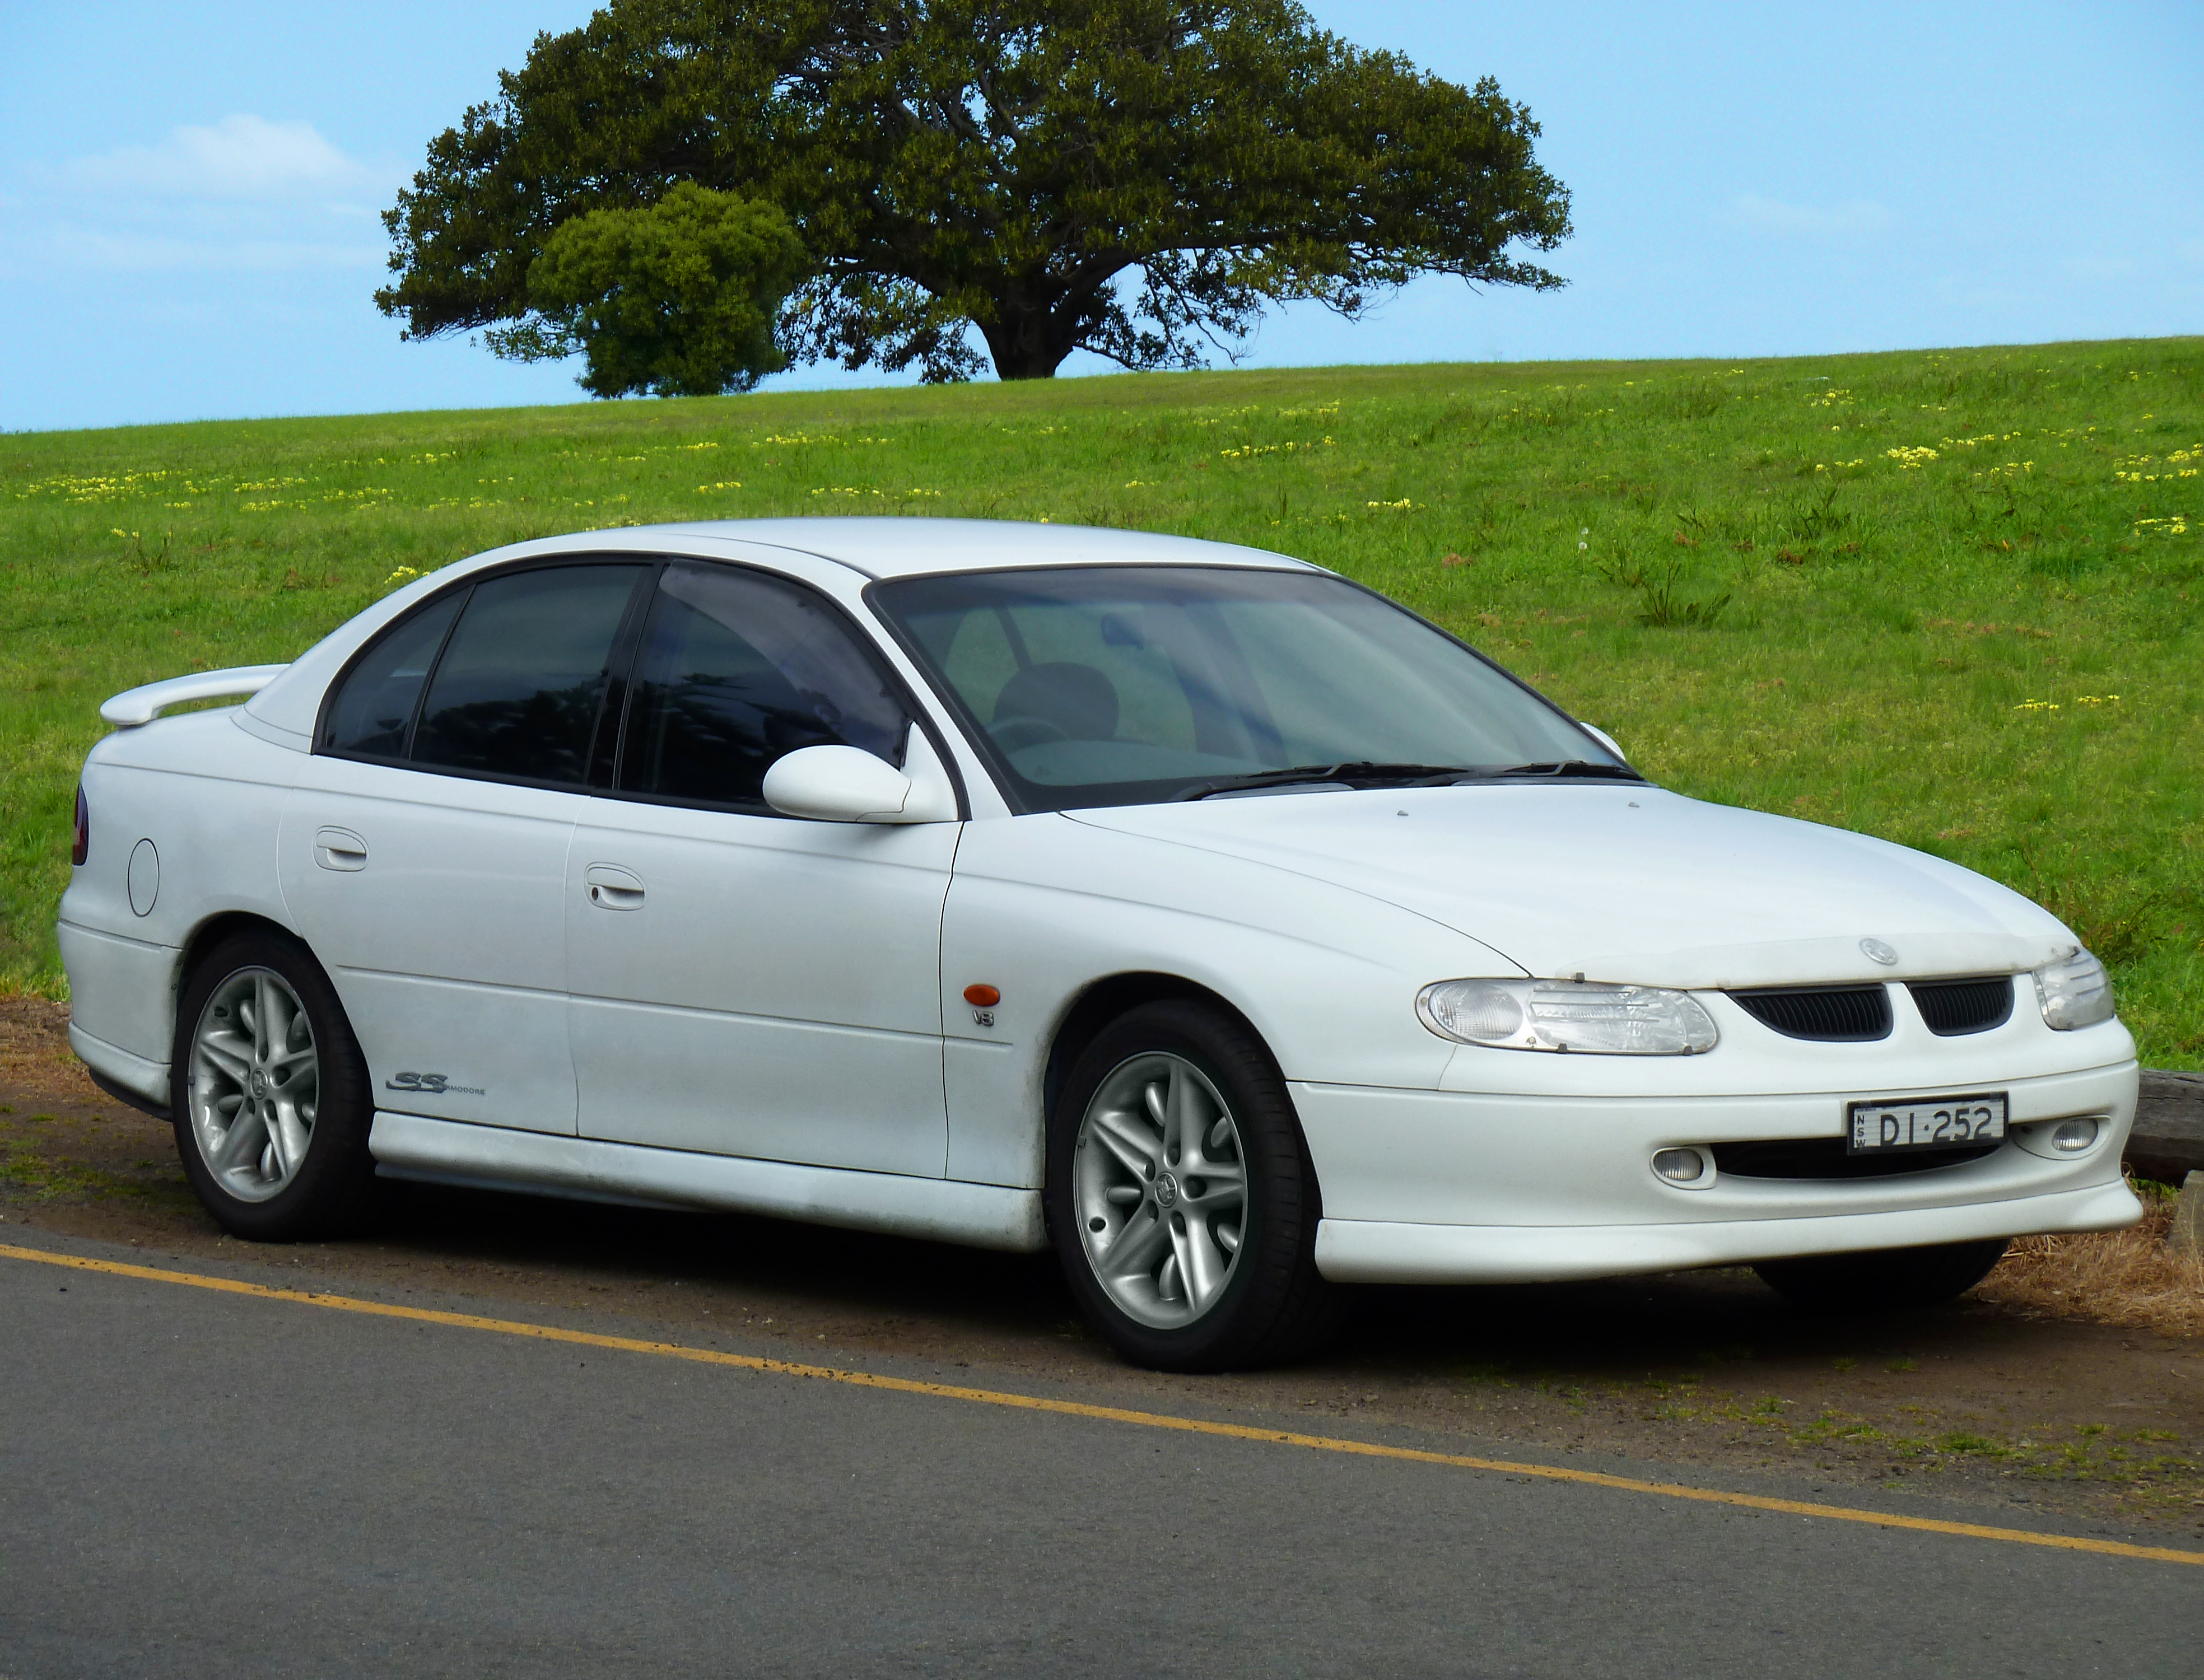 holden commodore (vt) 2006 models #12